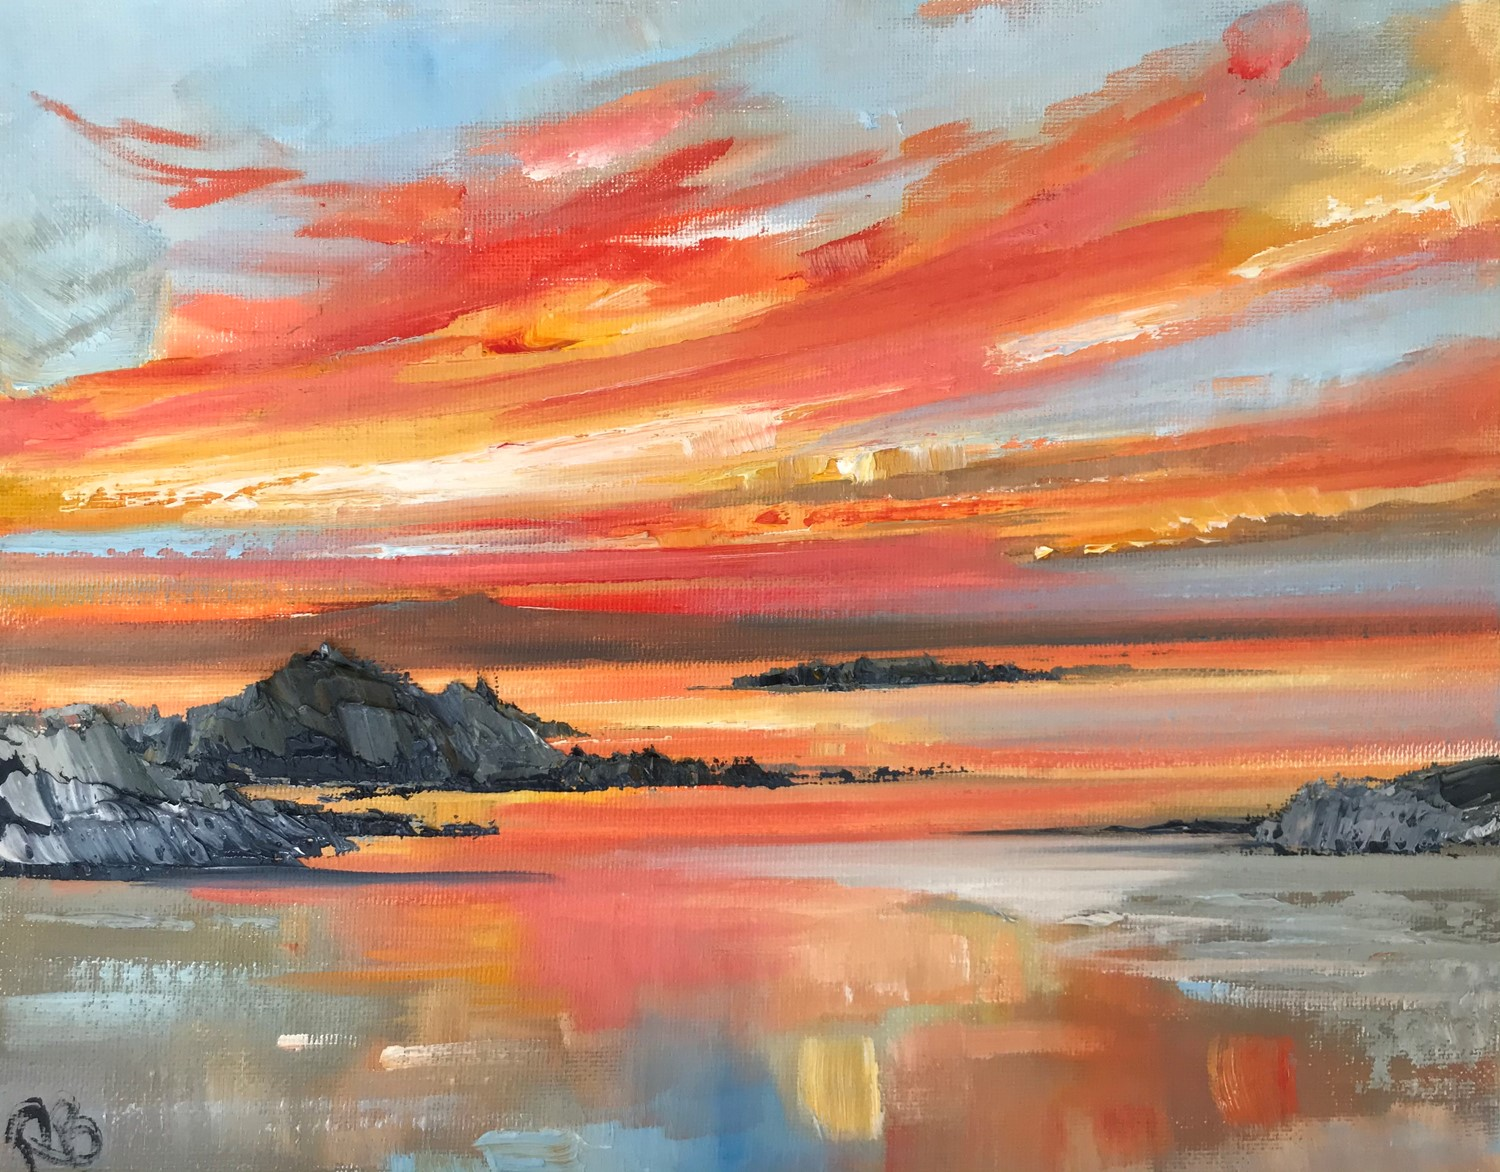 'At The Coast at sunset ' by artist Rosanne Barr